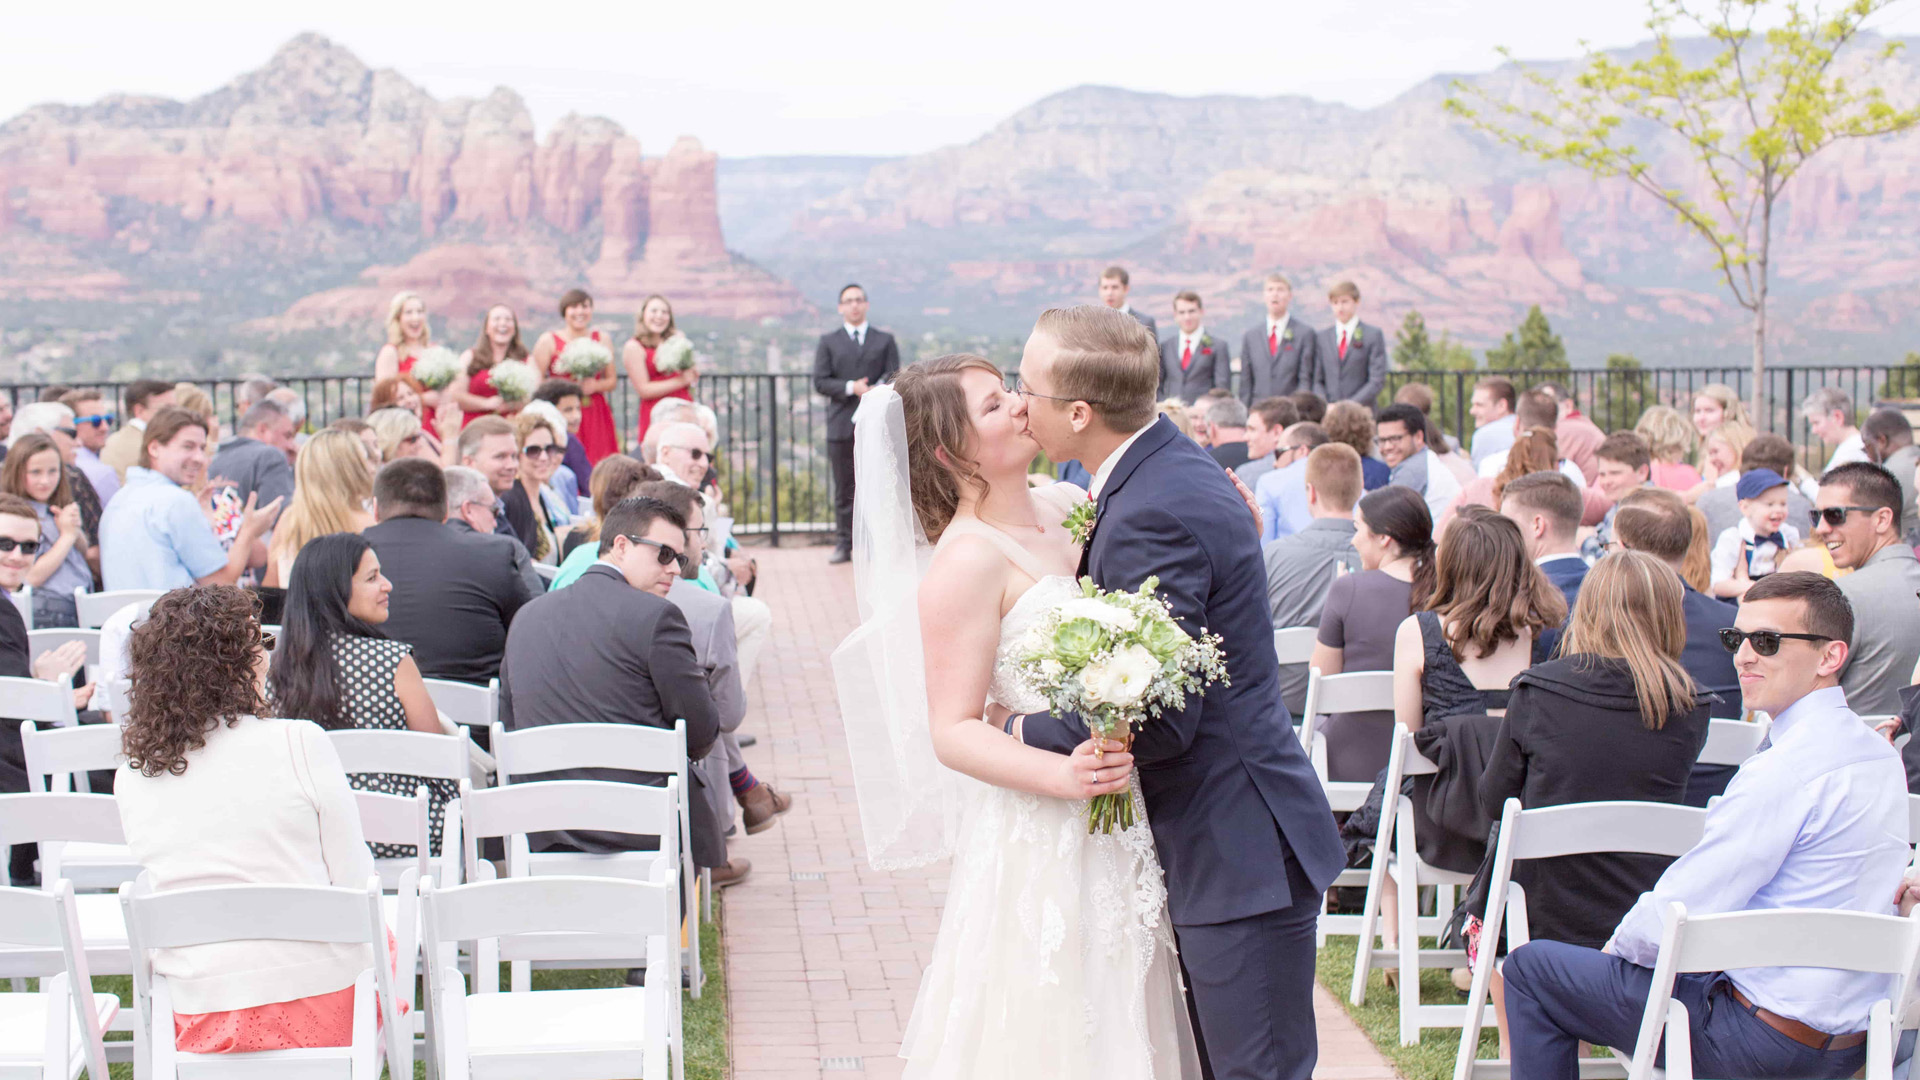 https://sedonaskyweddings.com/wp-content/uploads/2018/04/Sky-Ranch-Lodge-Wedding-Photo-Venue-Sedona-Arizona.jpg